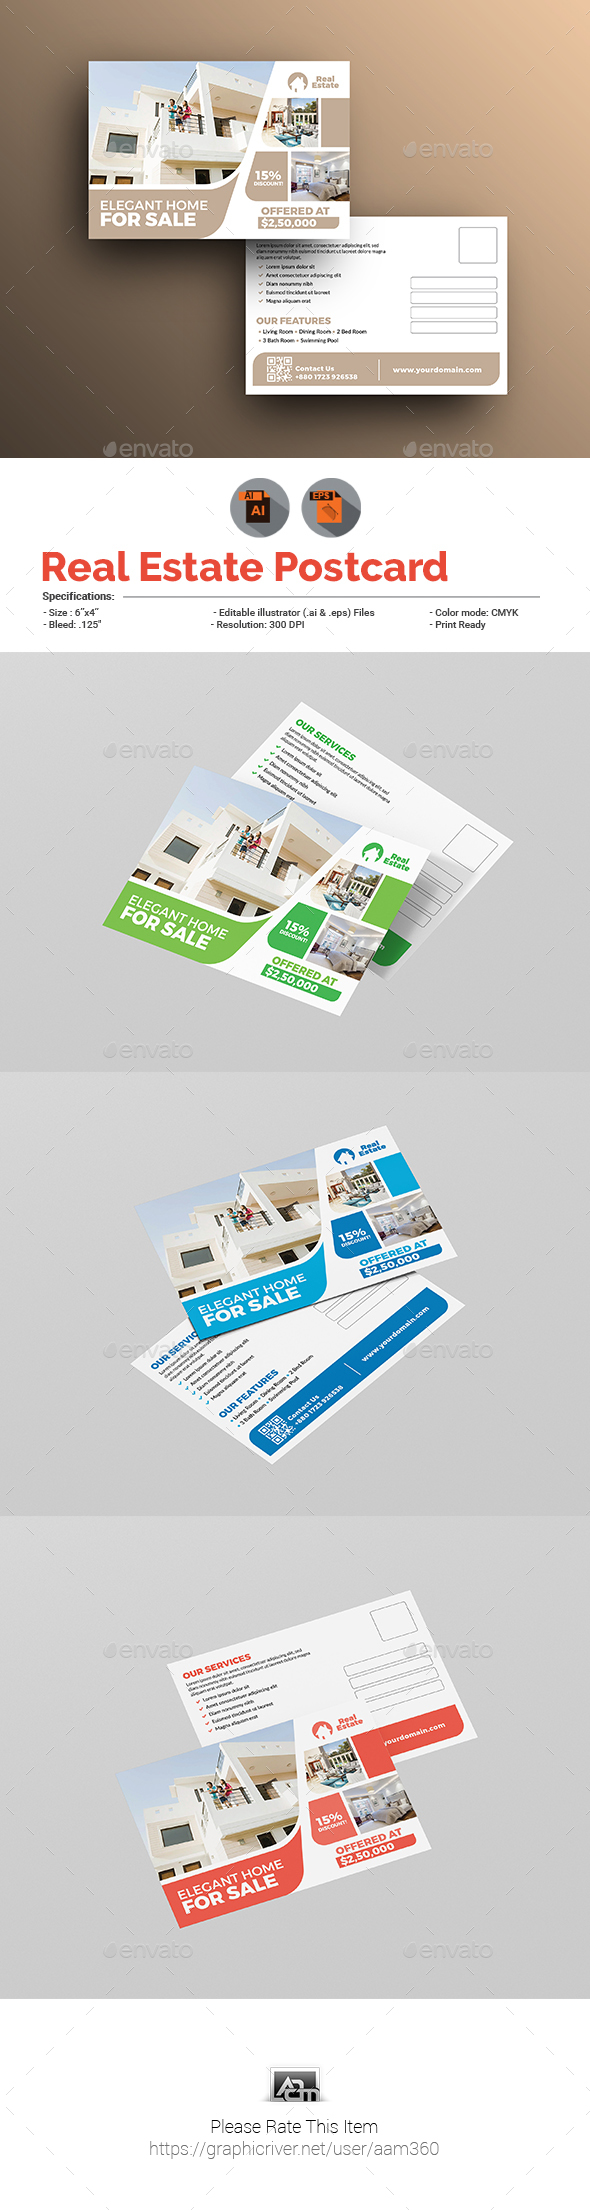 Real Estate Postcard Template by aam360 | GraphicRiver